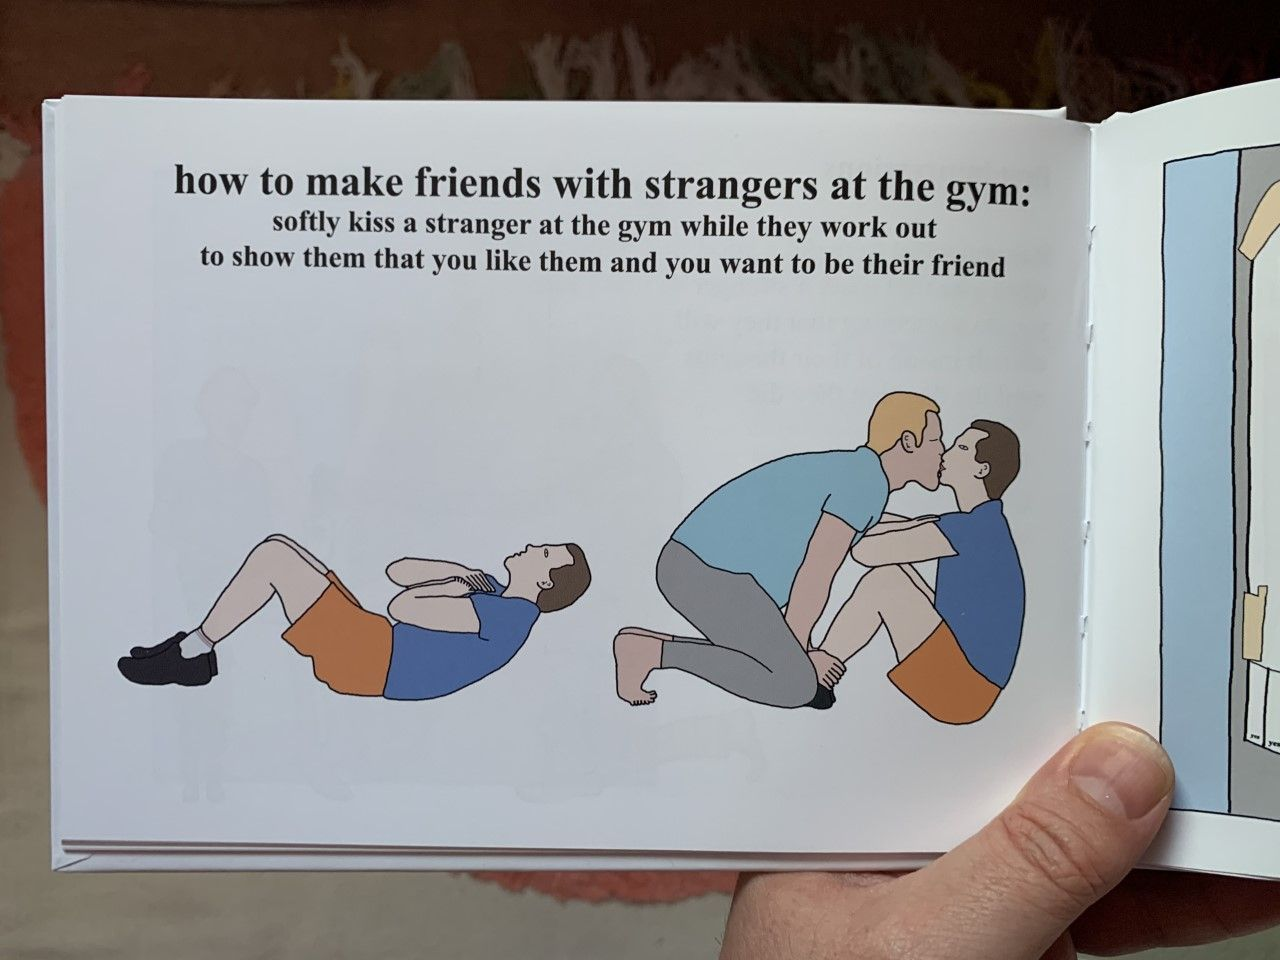 I tried this and now I'm banned from the gym